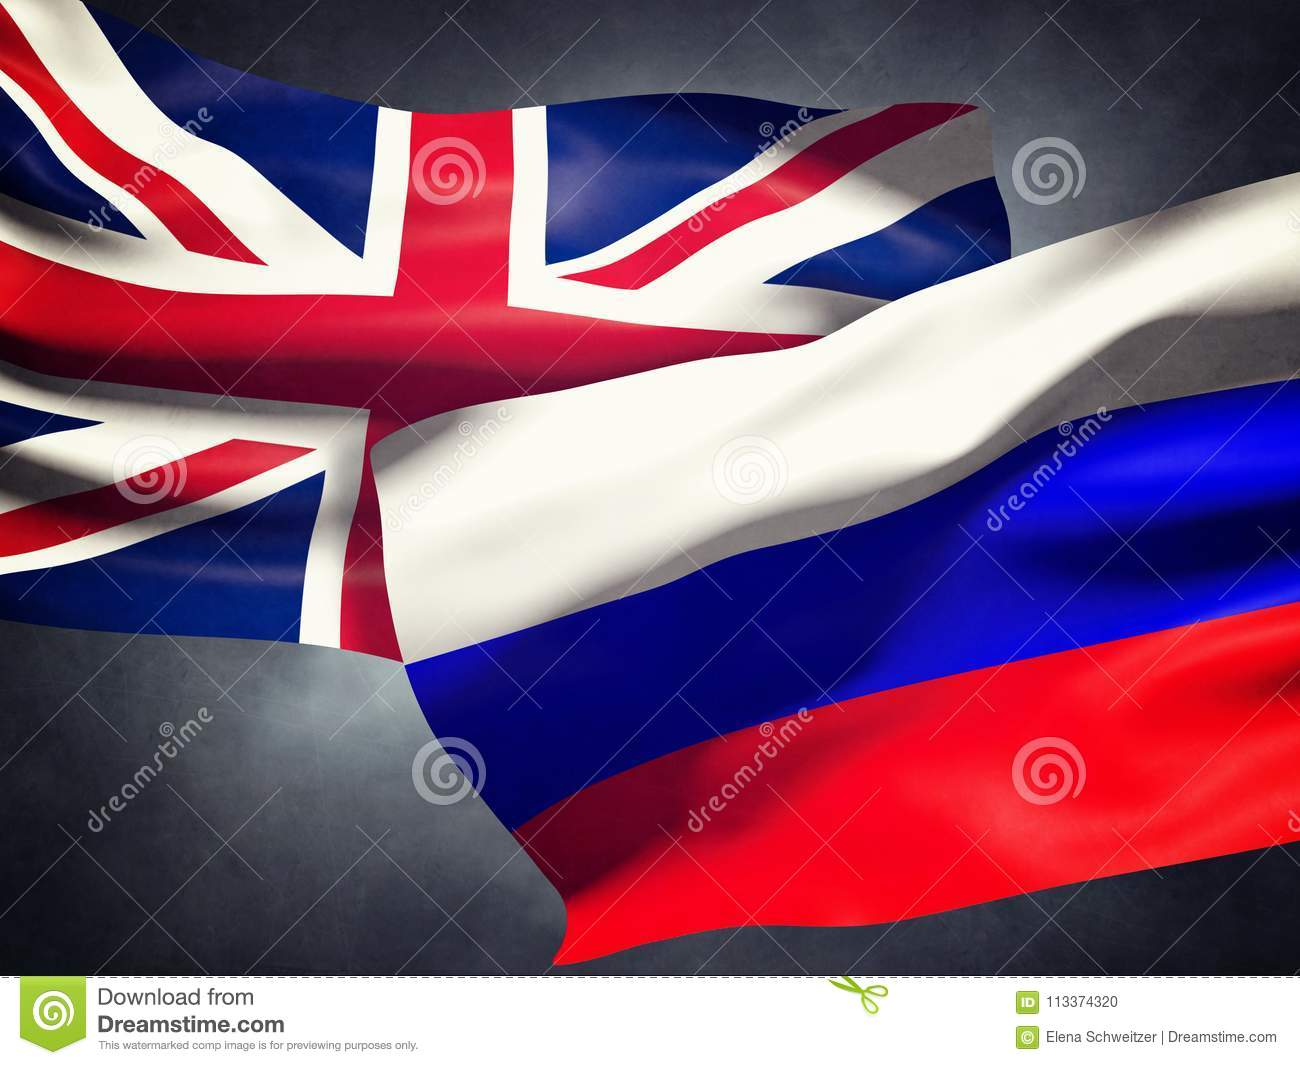 Flags United Kingdom of and Russia